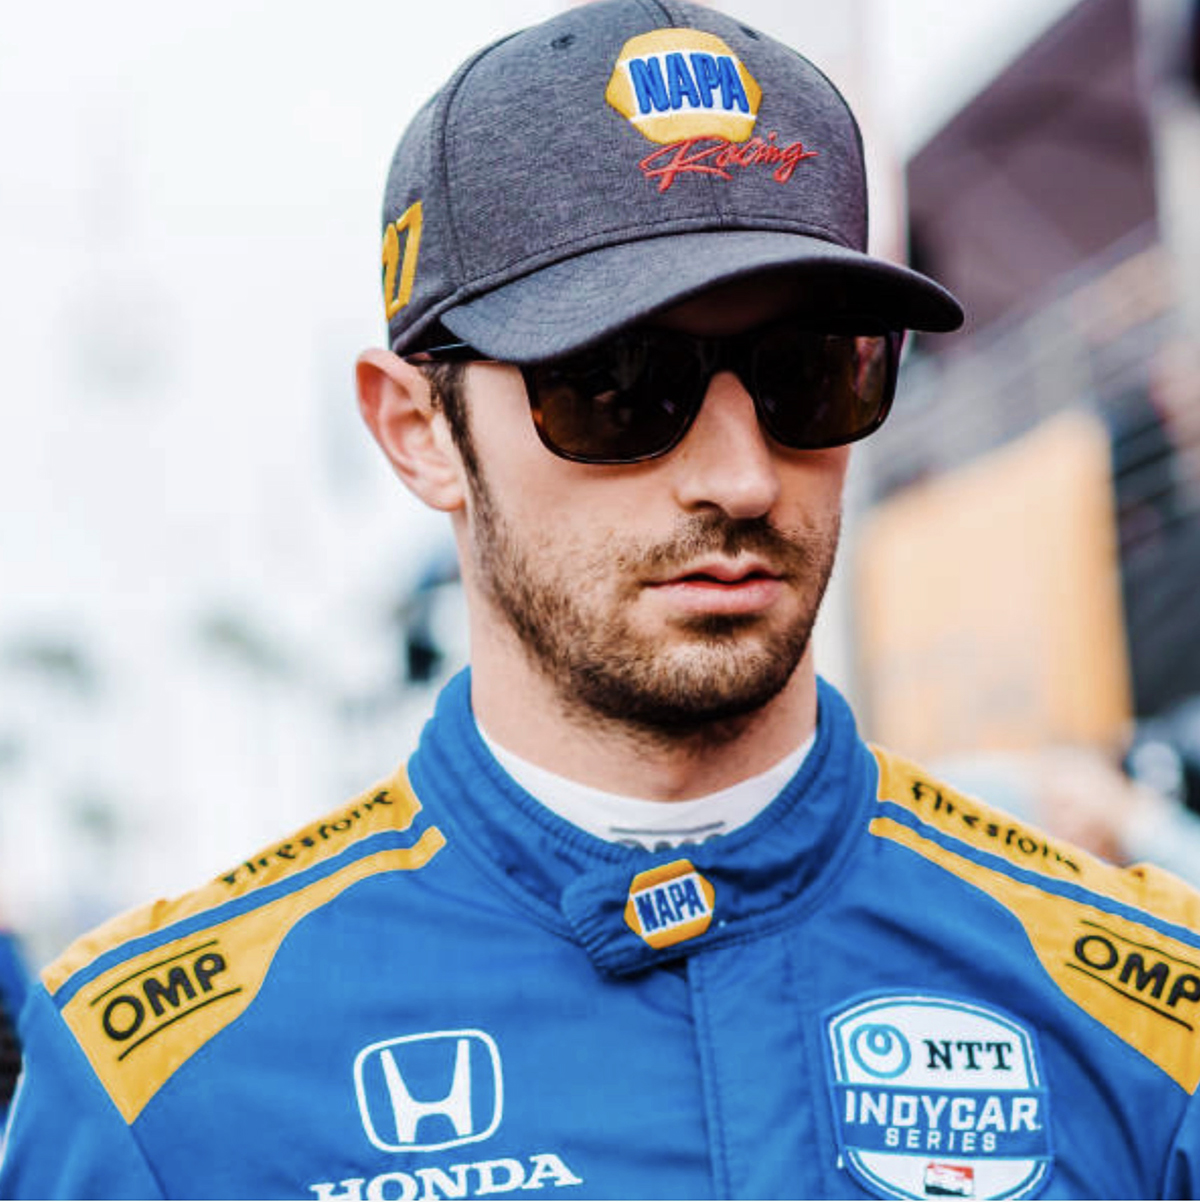 2019 Alexander Rossi Long Beach Grand Prix Race Winning